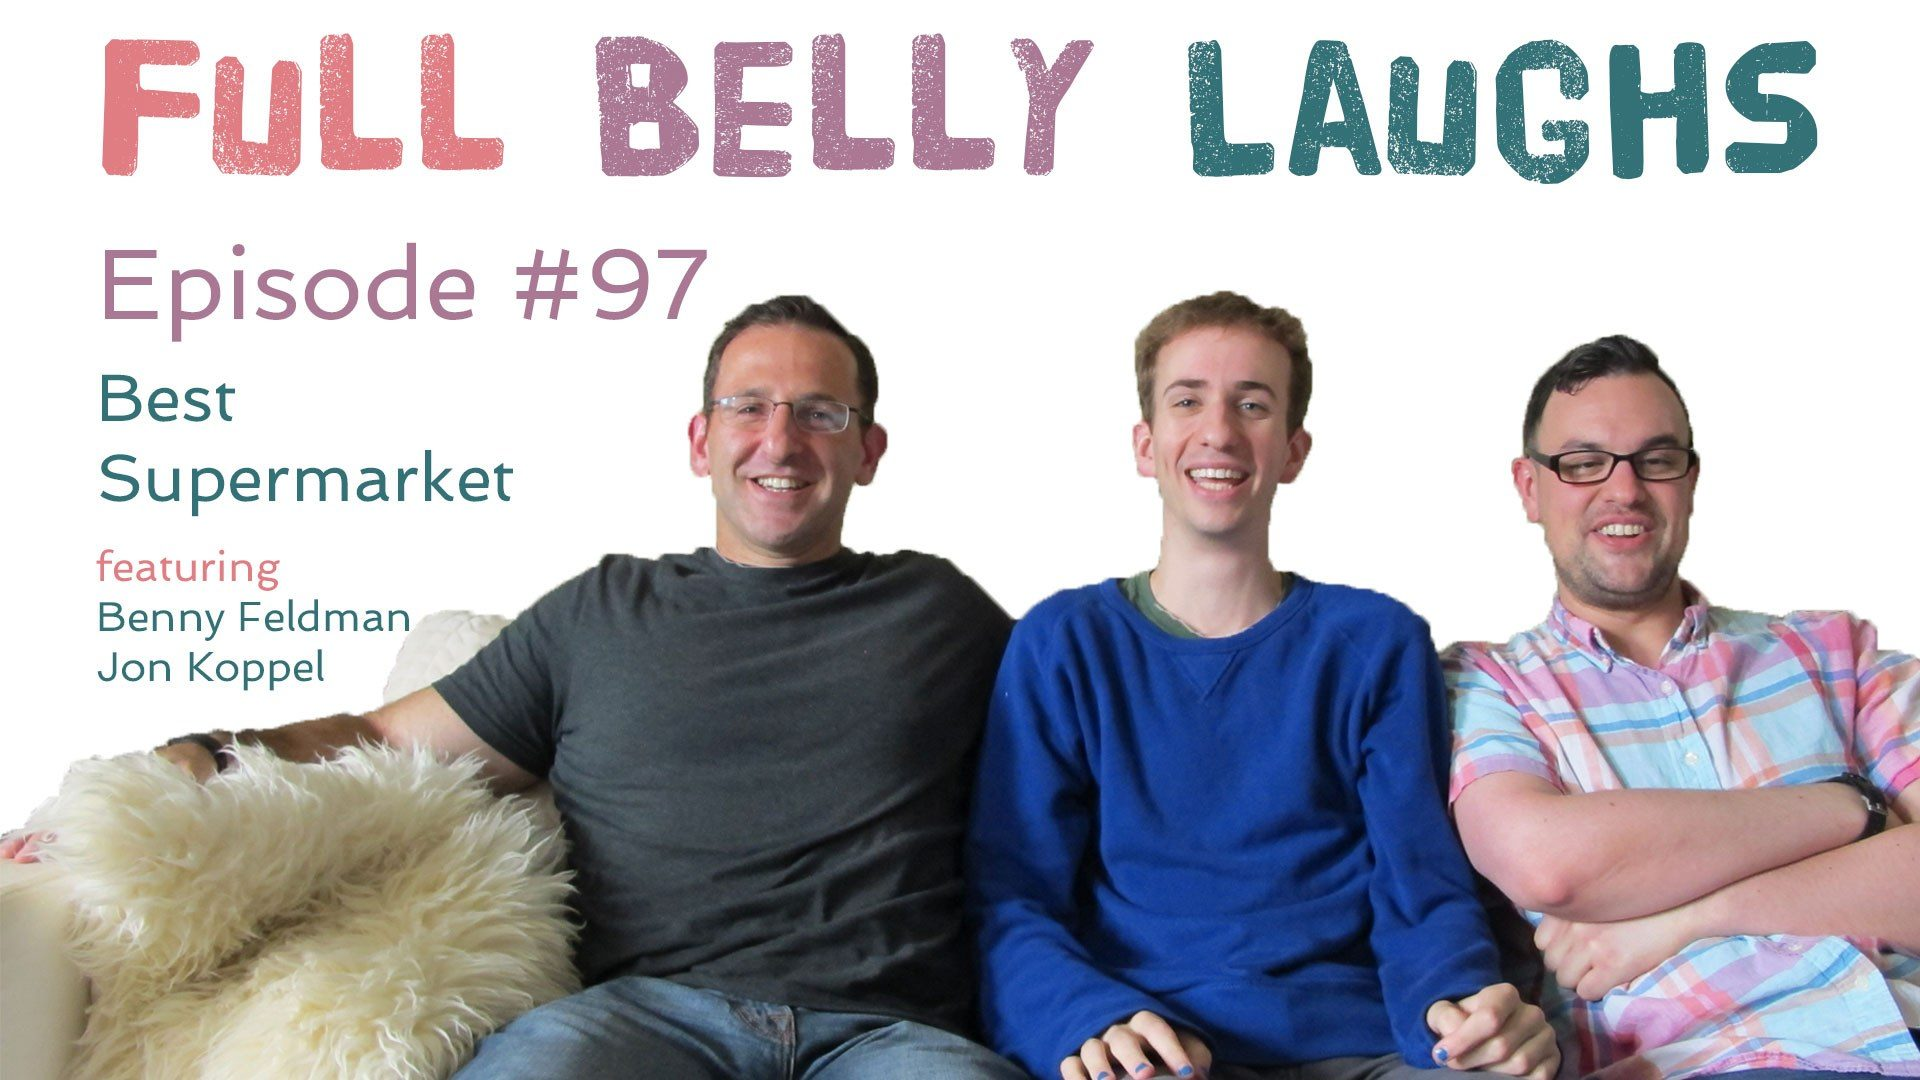 full belly laughs podcast episode 97 best supermarket audio artwork